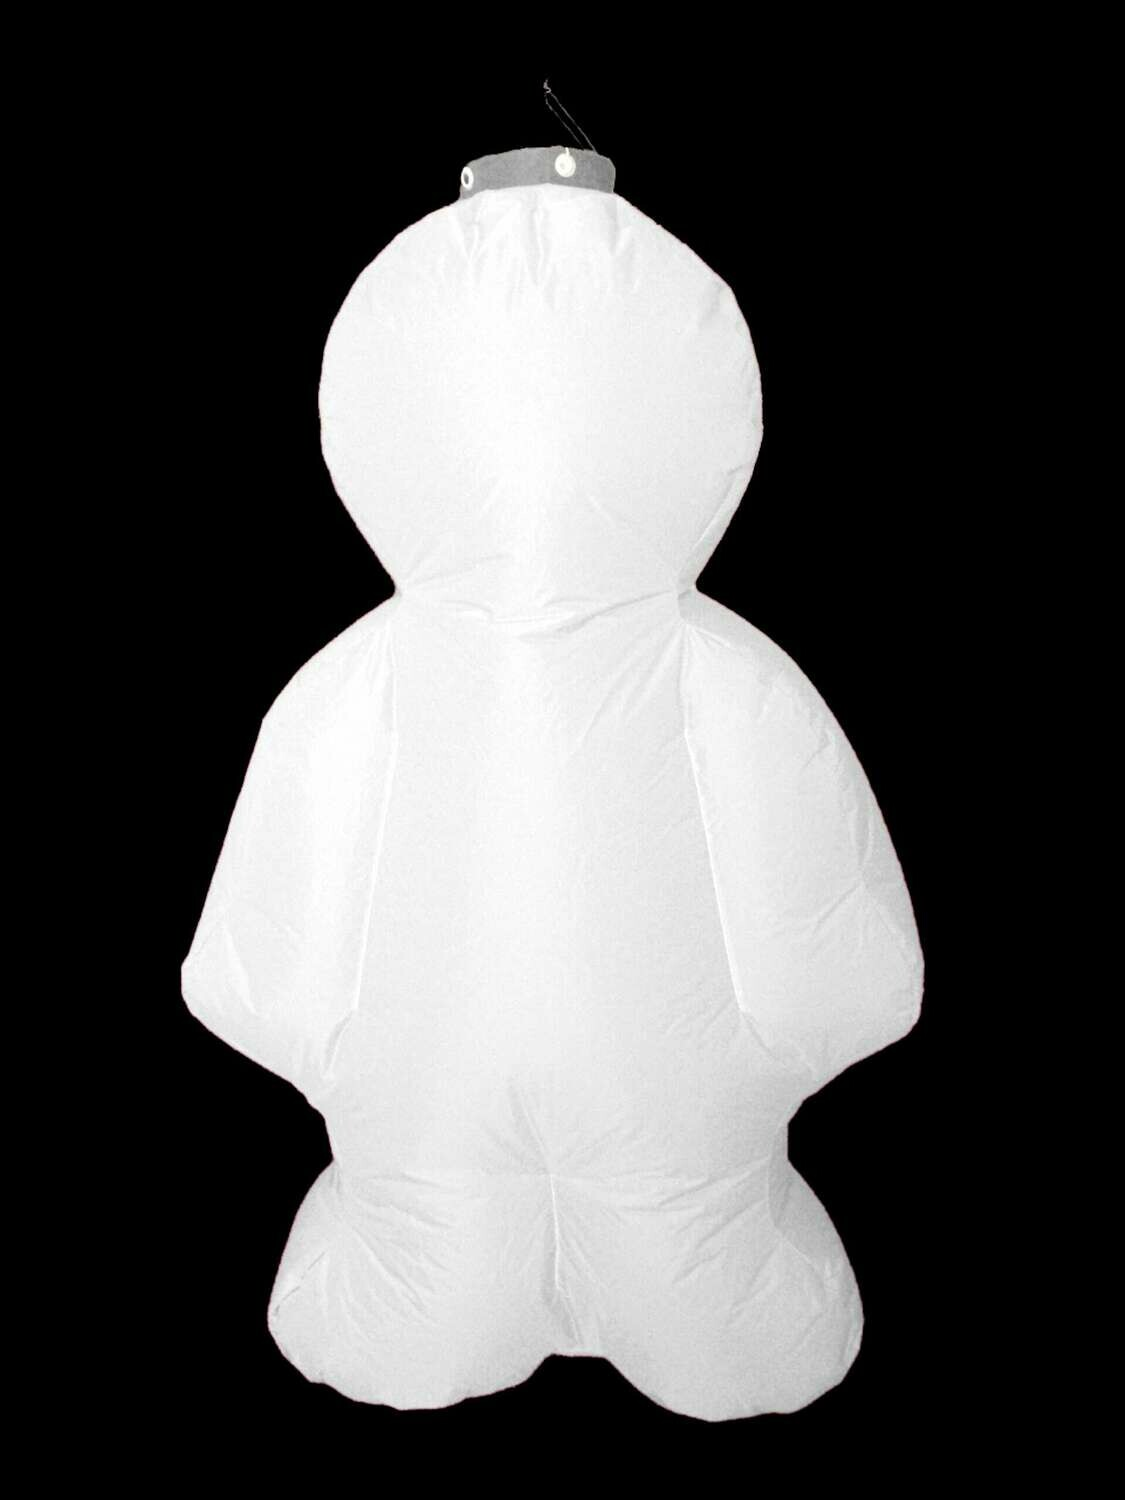 Hanging Inflatable Jelly Baby 3ft/91cm x 5ft/152cm